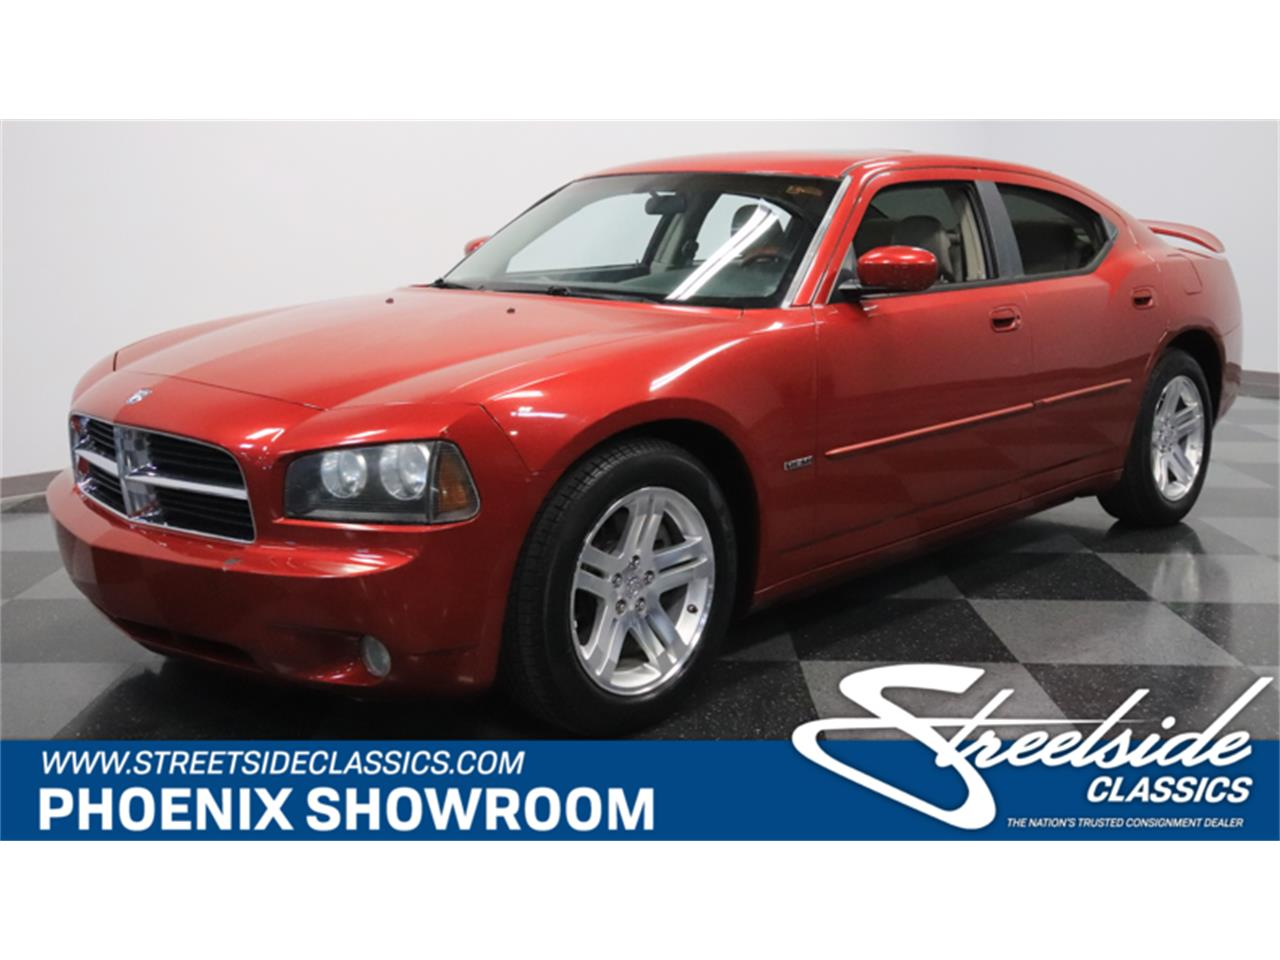 Large Picture of '06 Dodge Charger R/T located in Arizona Offered by Streetside Classics - Phoenix - MZDF